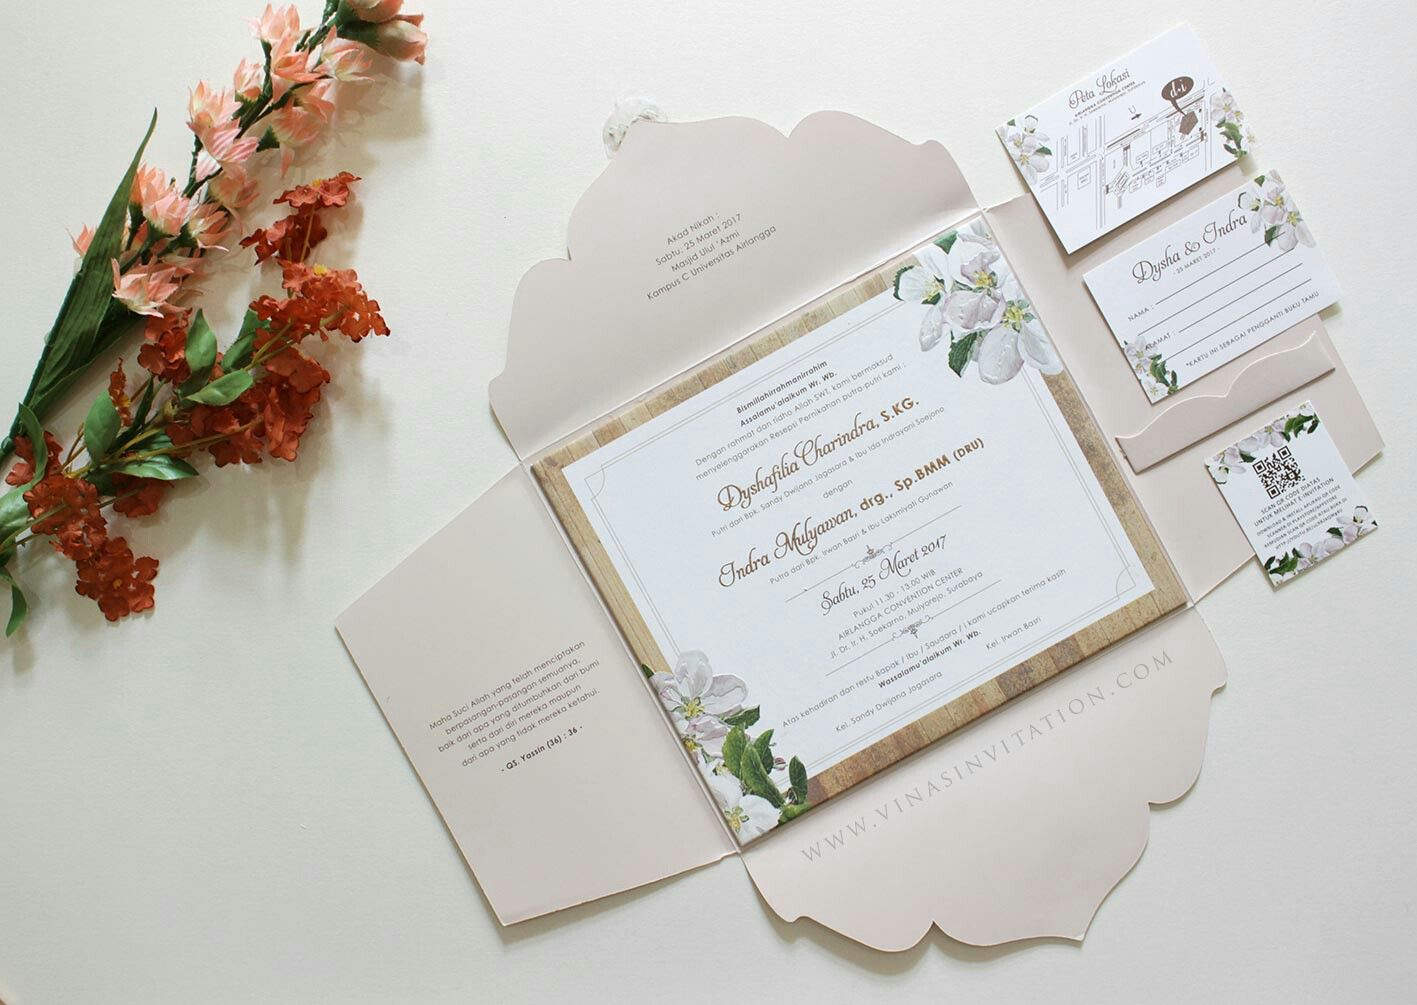 Vinas invitation. Flower theme invitation. Indonesian wedding ...